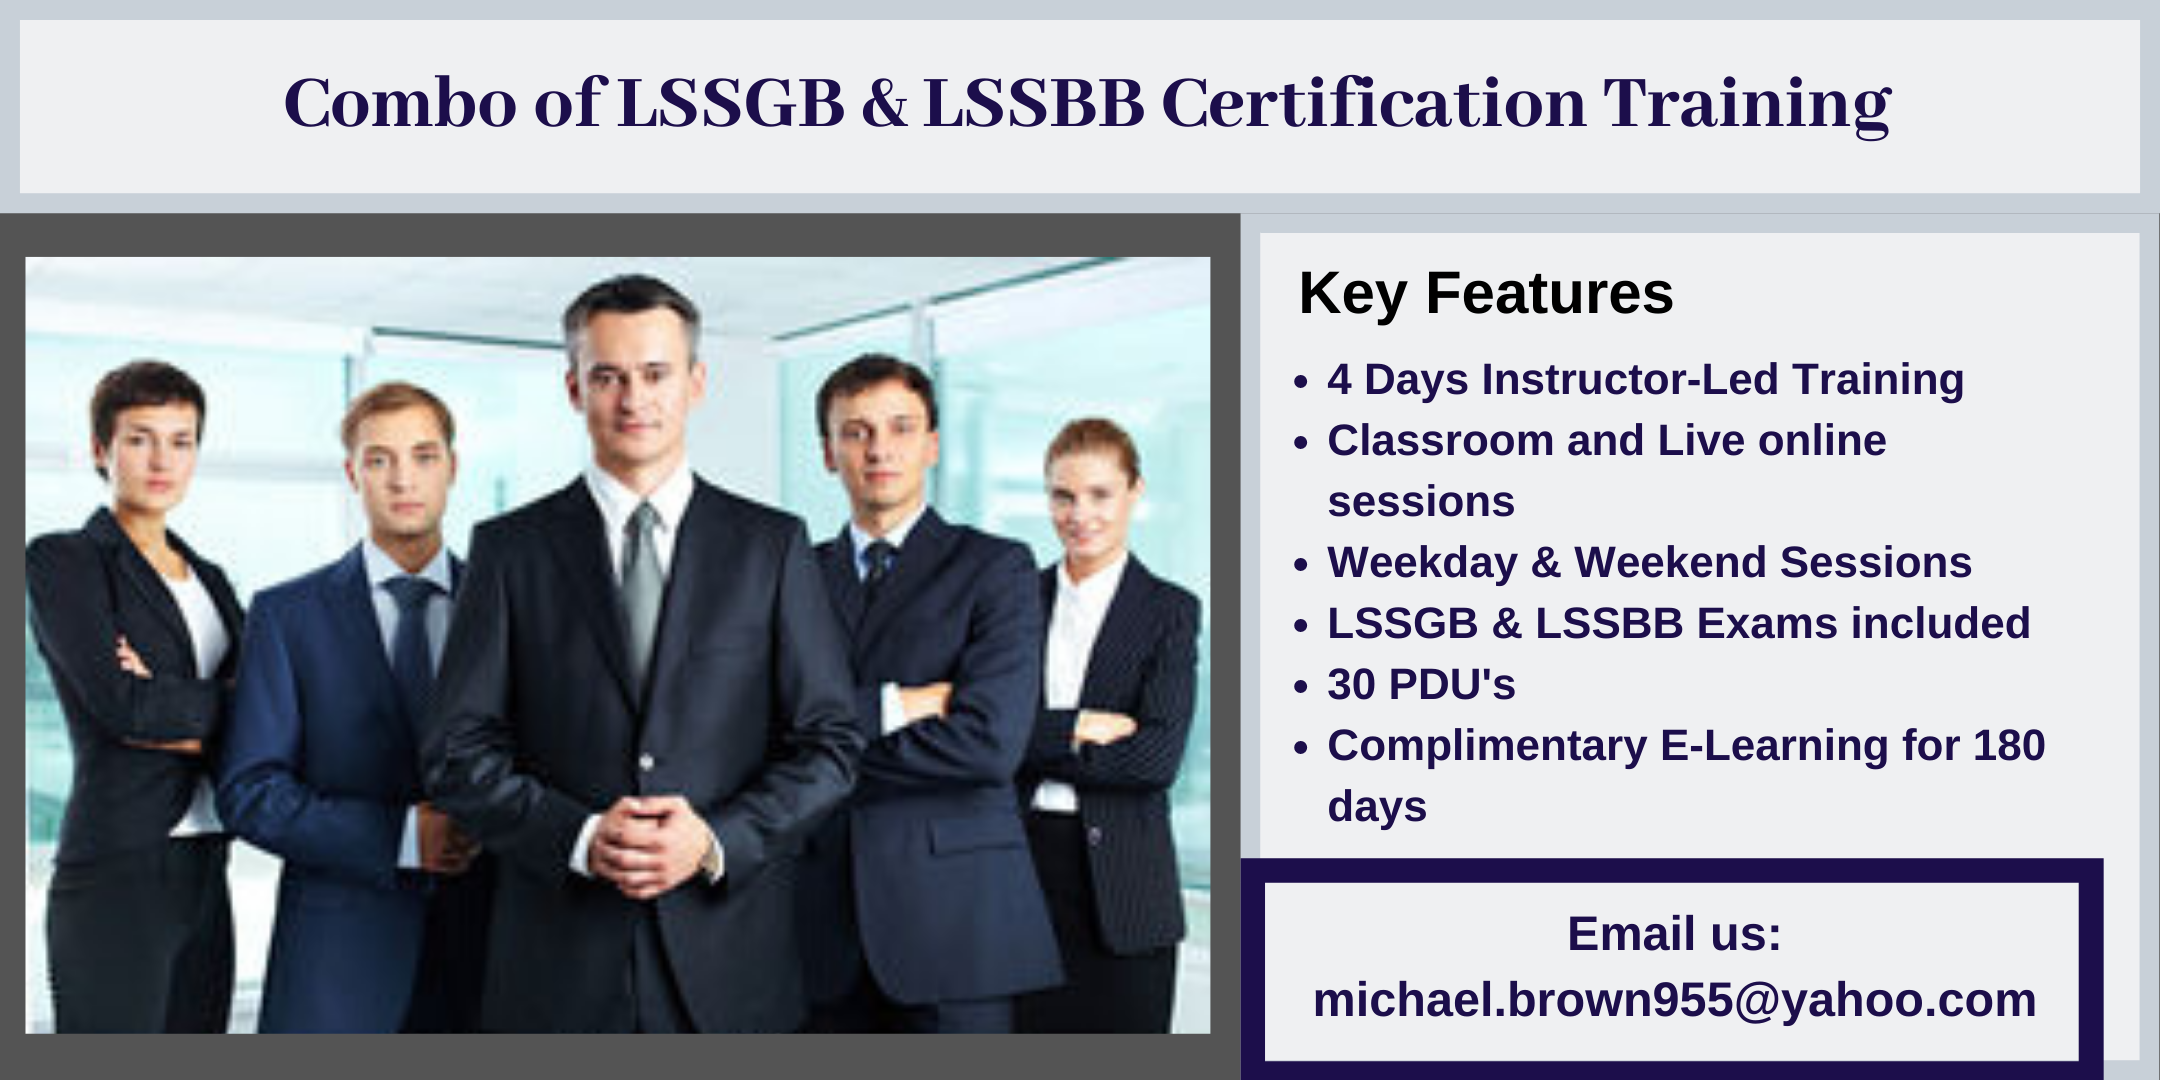 Combo of LSSGB & LSSBB 4 days Certification Training in Llano, CA